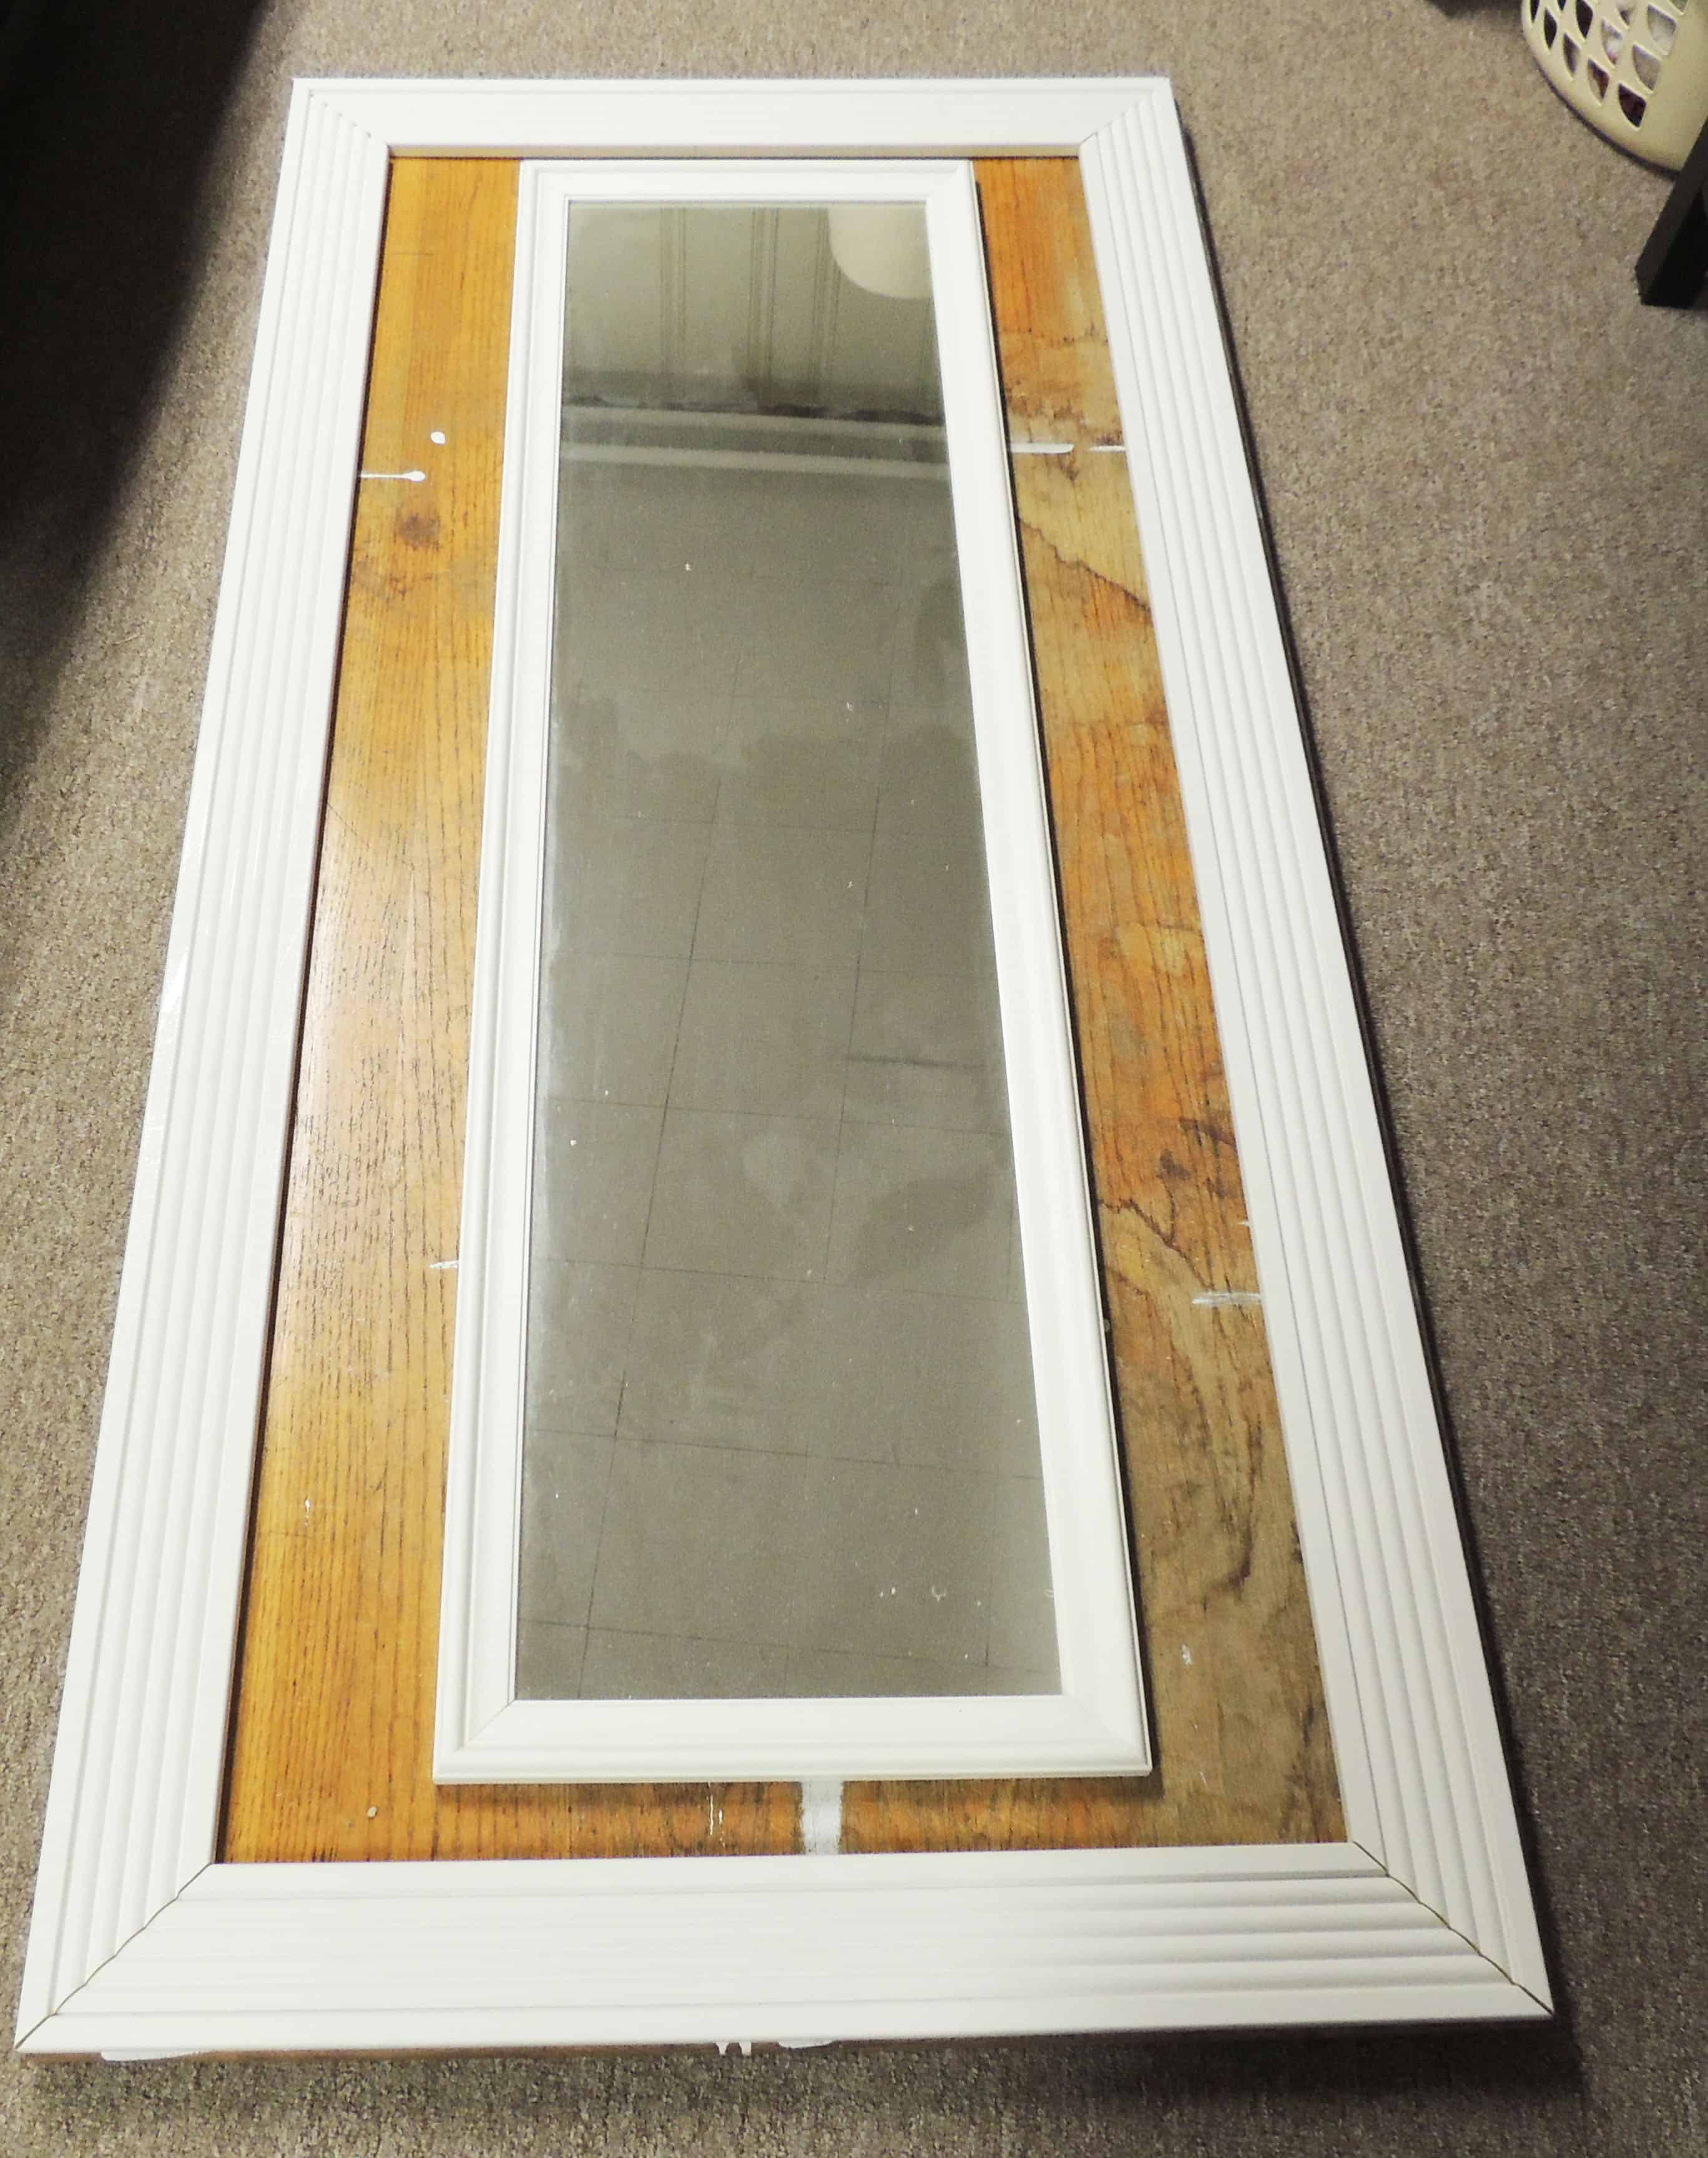 DIY Floor-mirror: $5 mirror set on wooden table with white wooden frame